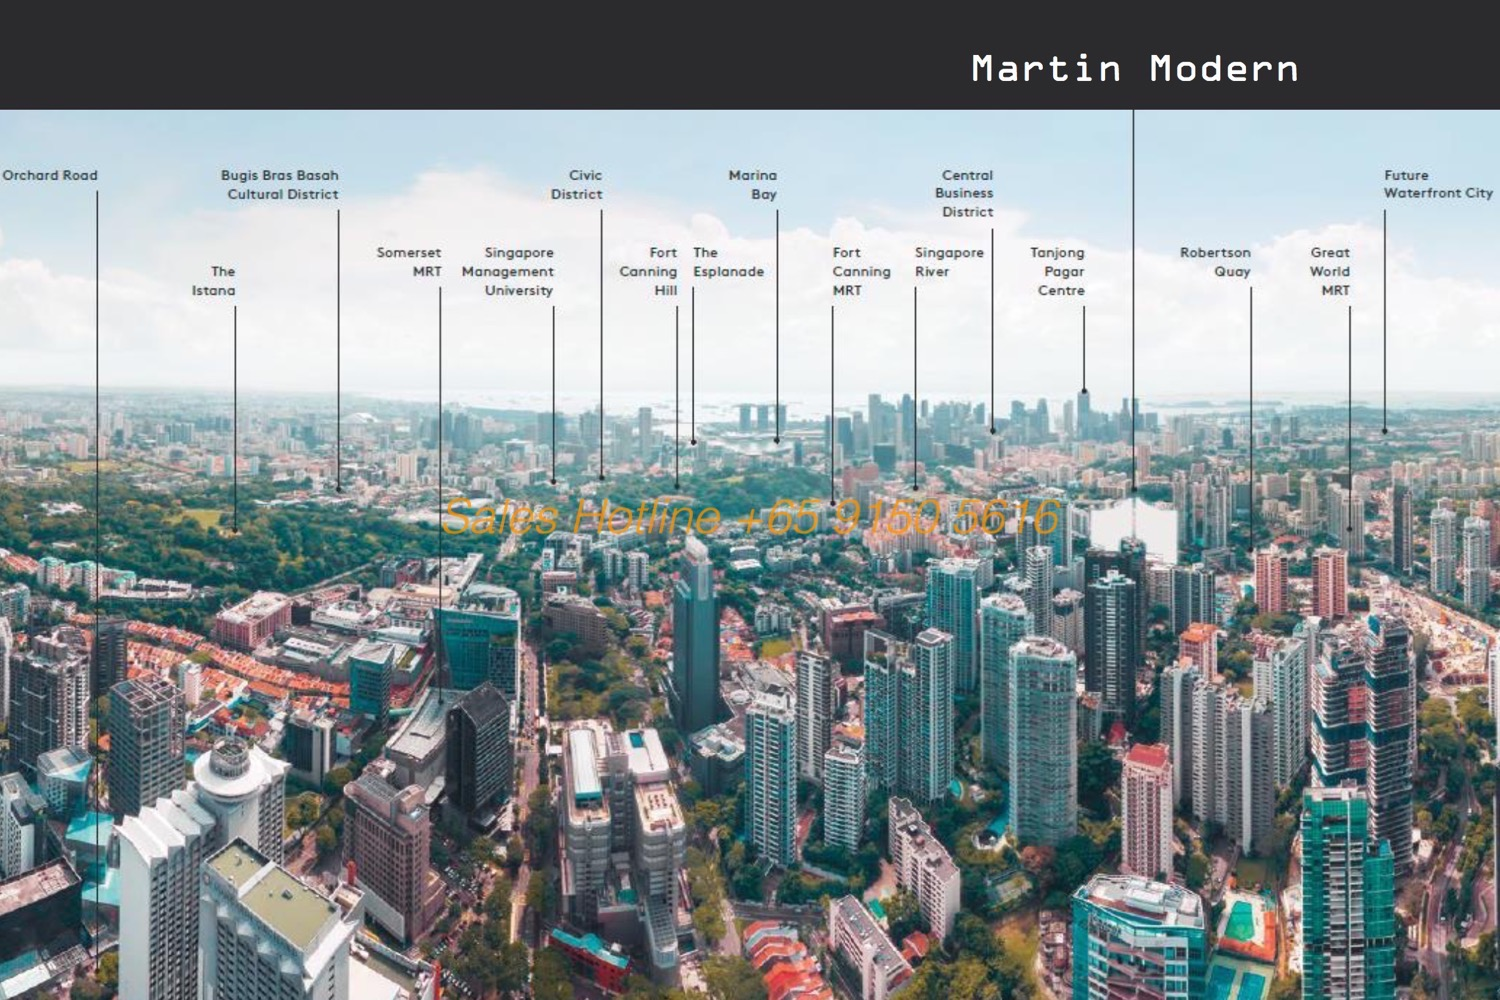 Martin Modern - Location Overview